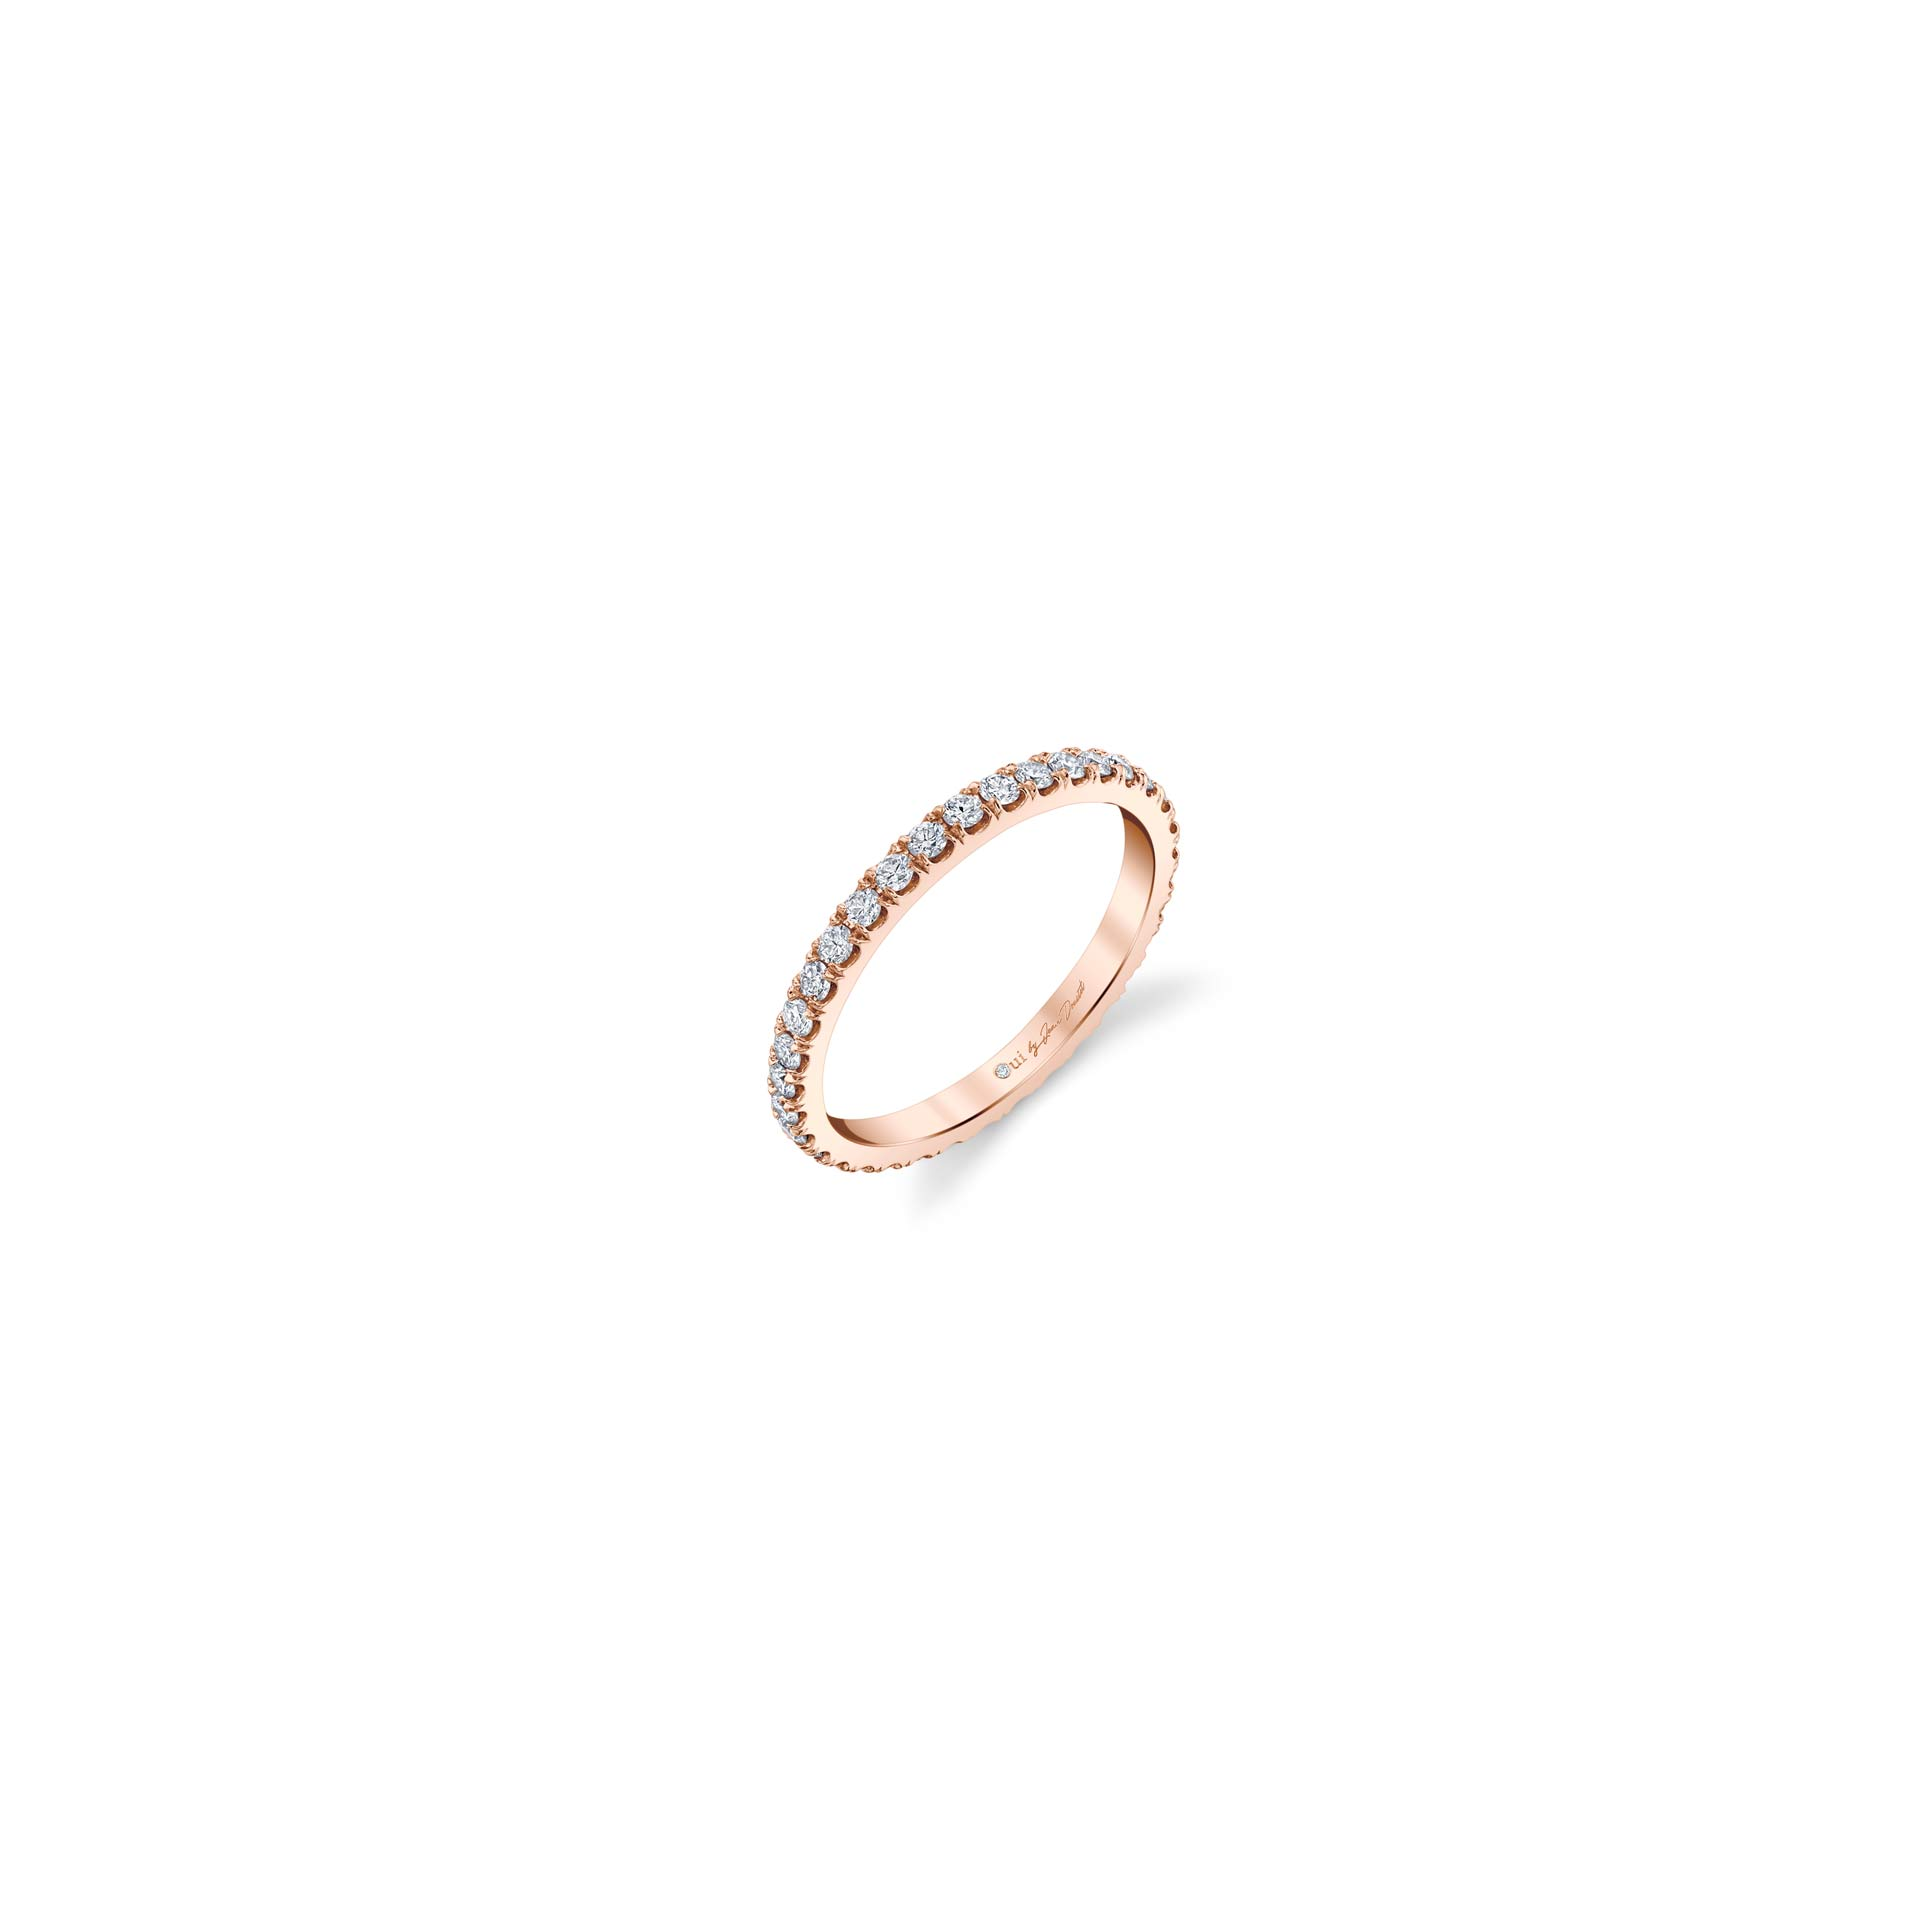 Eloise Women's Wedding Band with diamond pavé in 18k Rose Gold Standing View by Oui by Jean Dousset